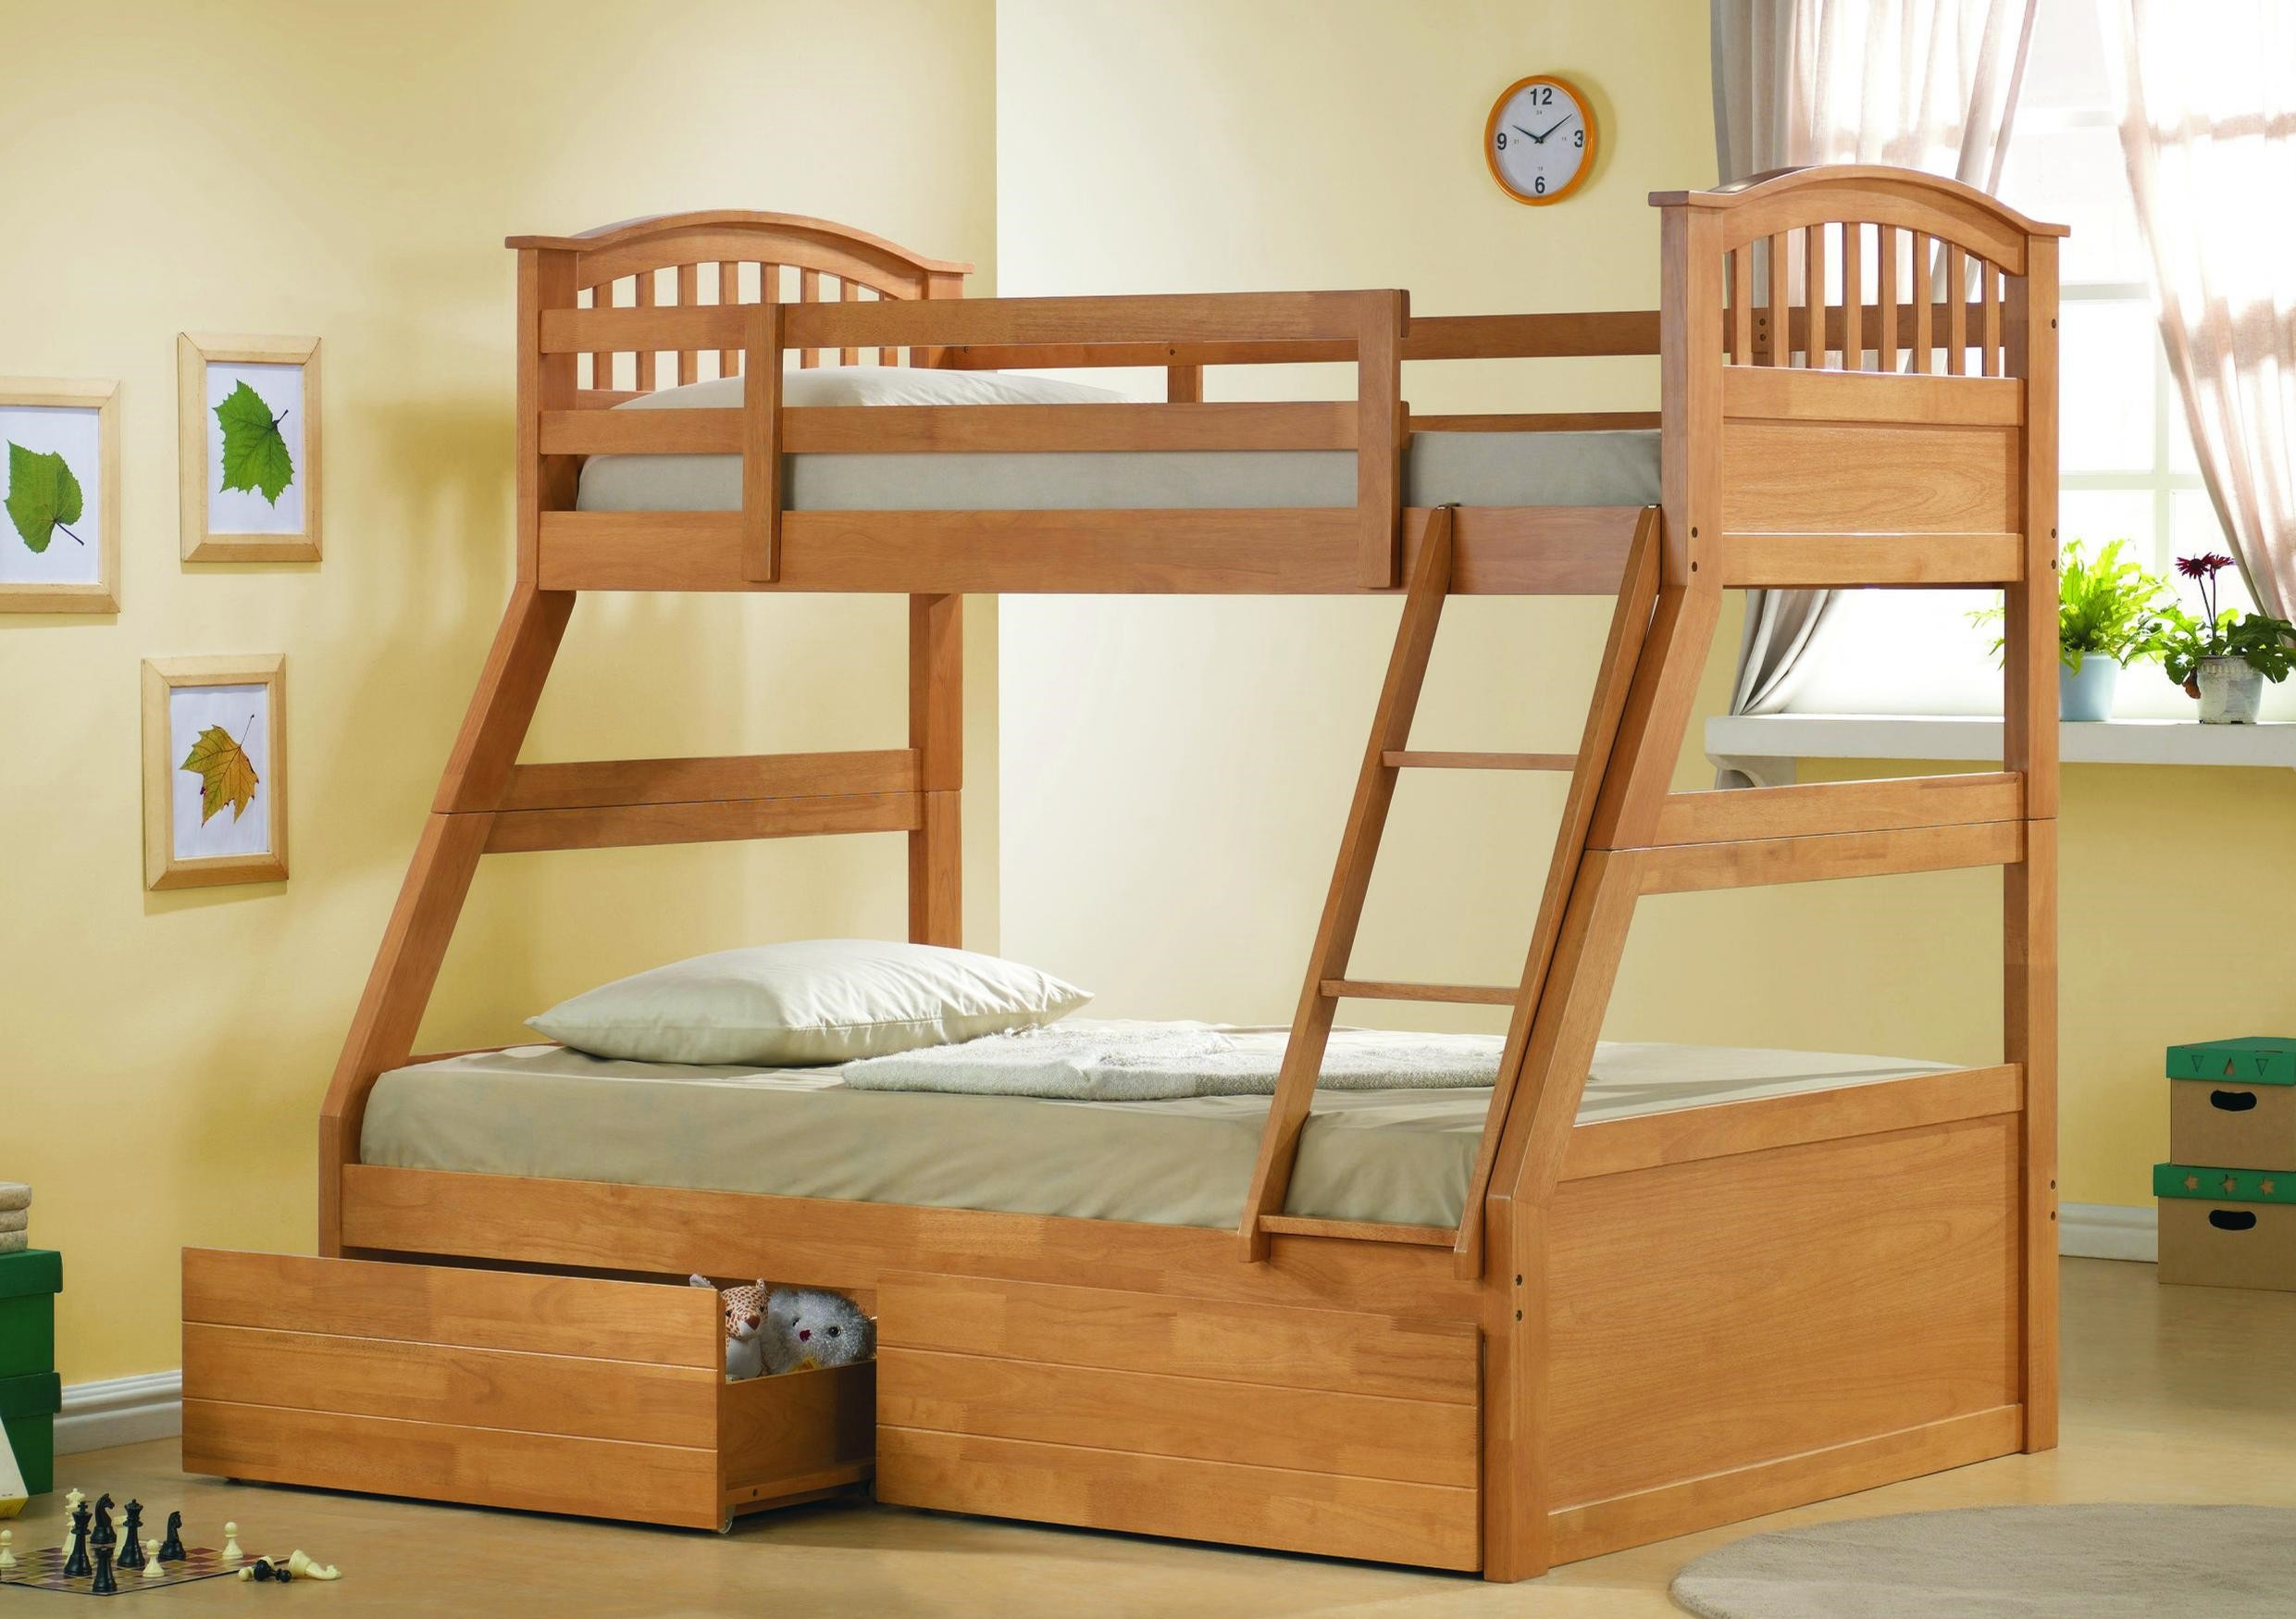 Cool beds Awesome bunk beds for kids